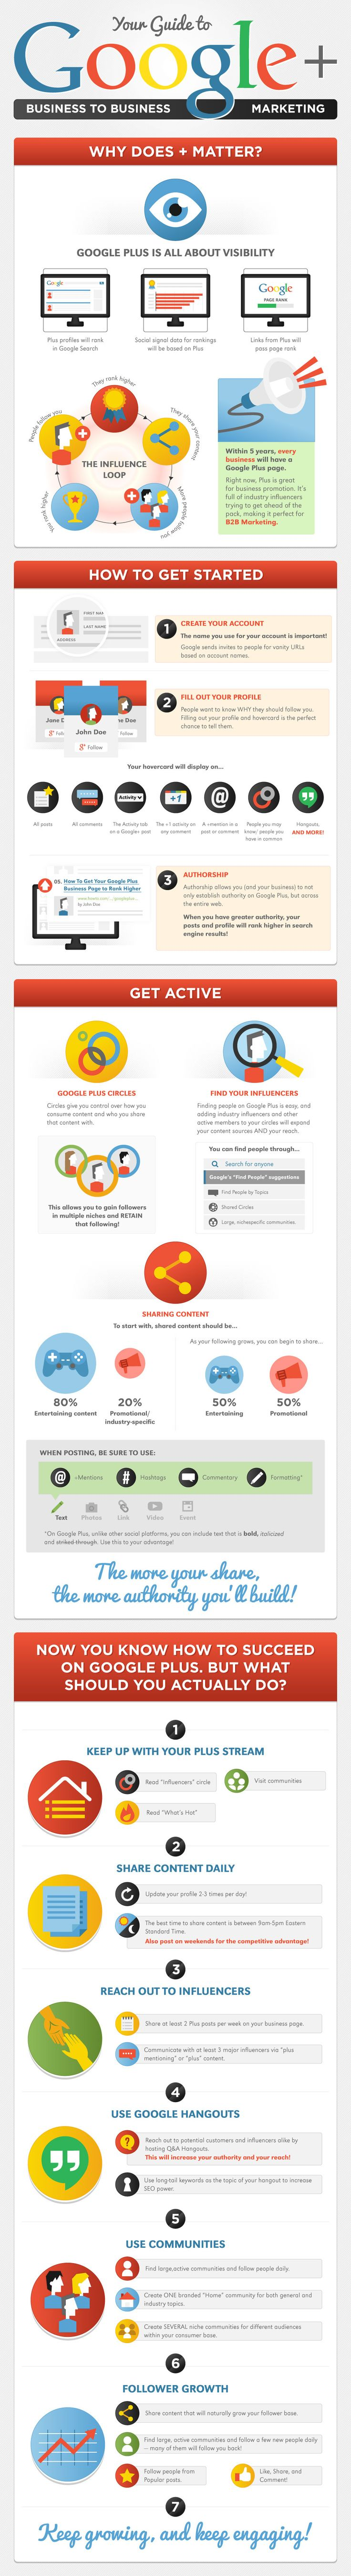 guide marketing in google+